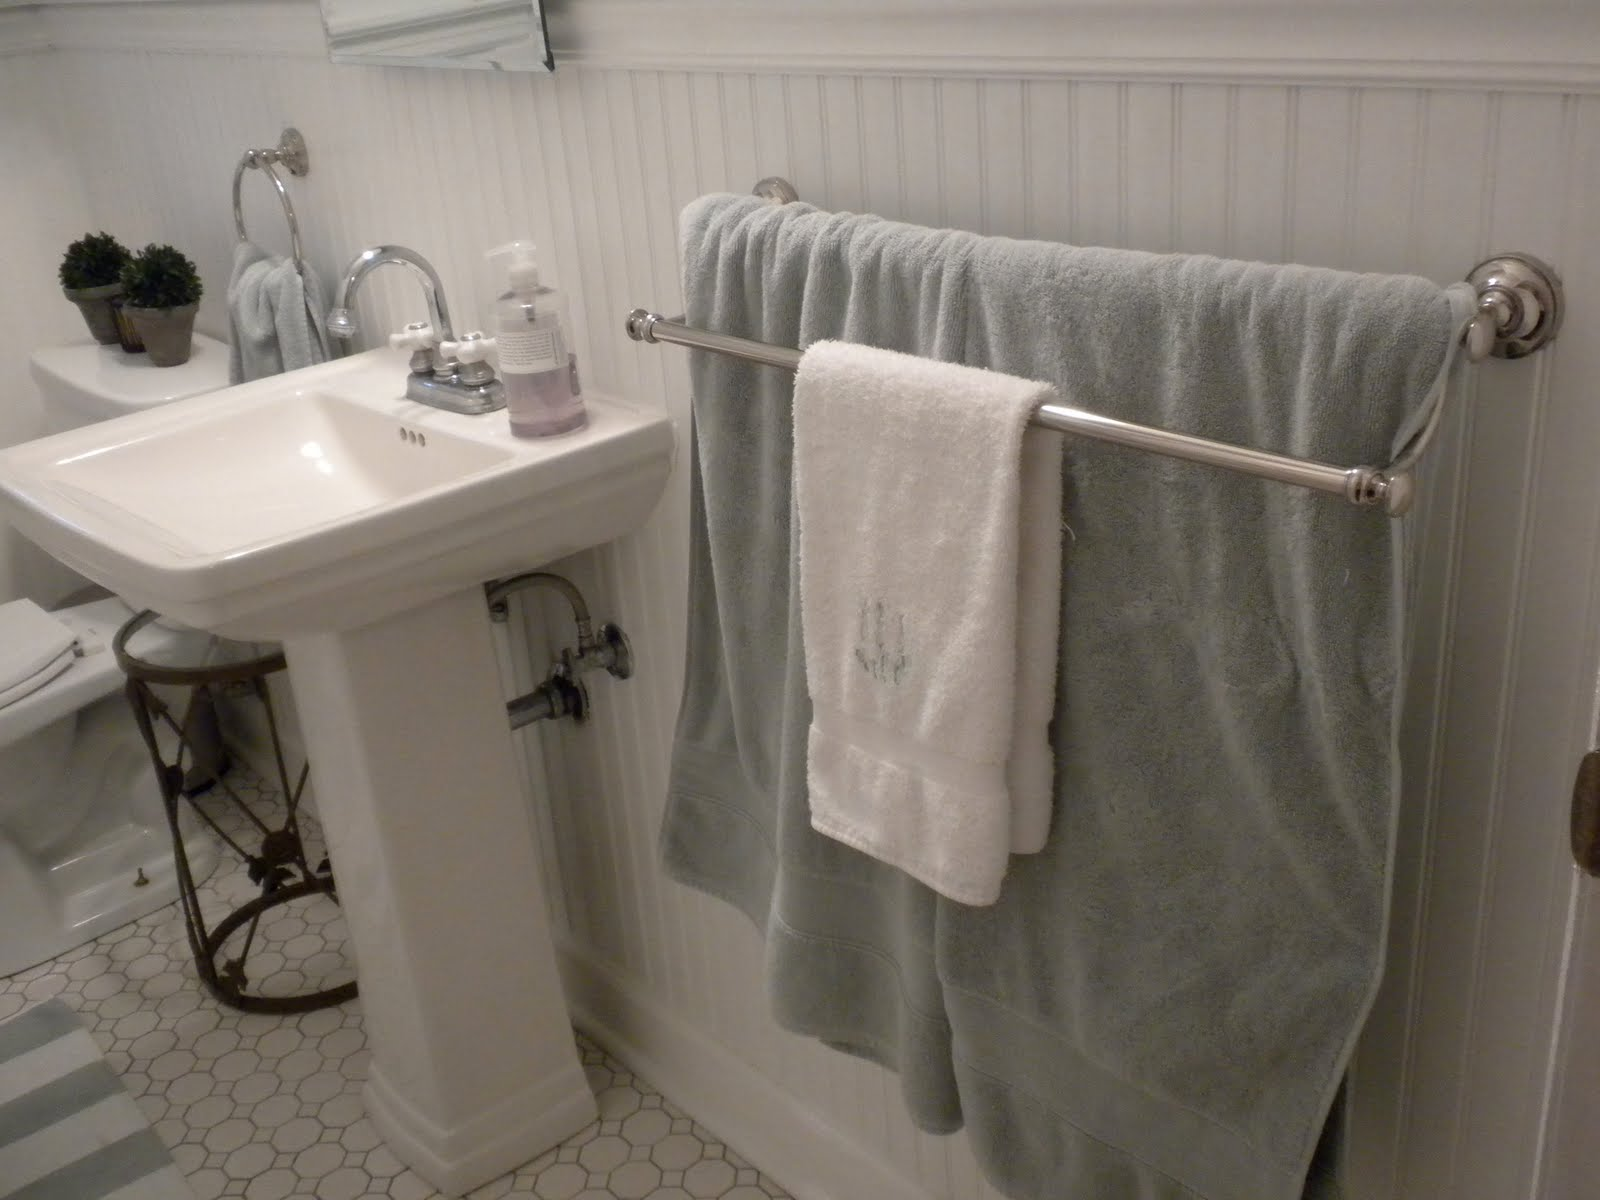 Double towel bars for bathrooms - Double Towel Bars For Bathrooms 30